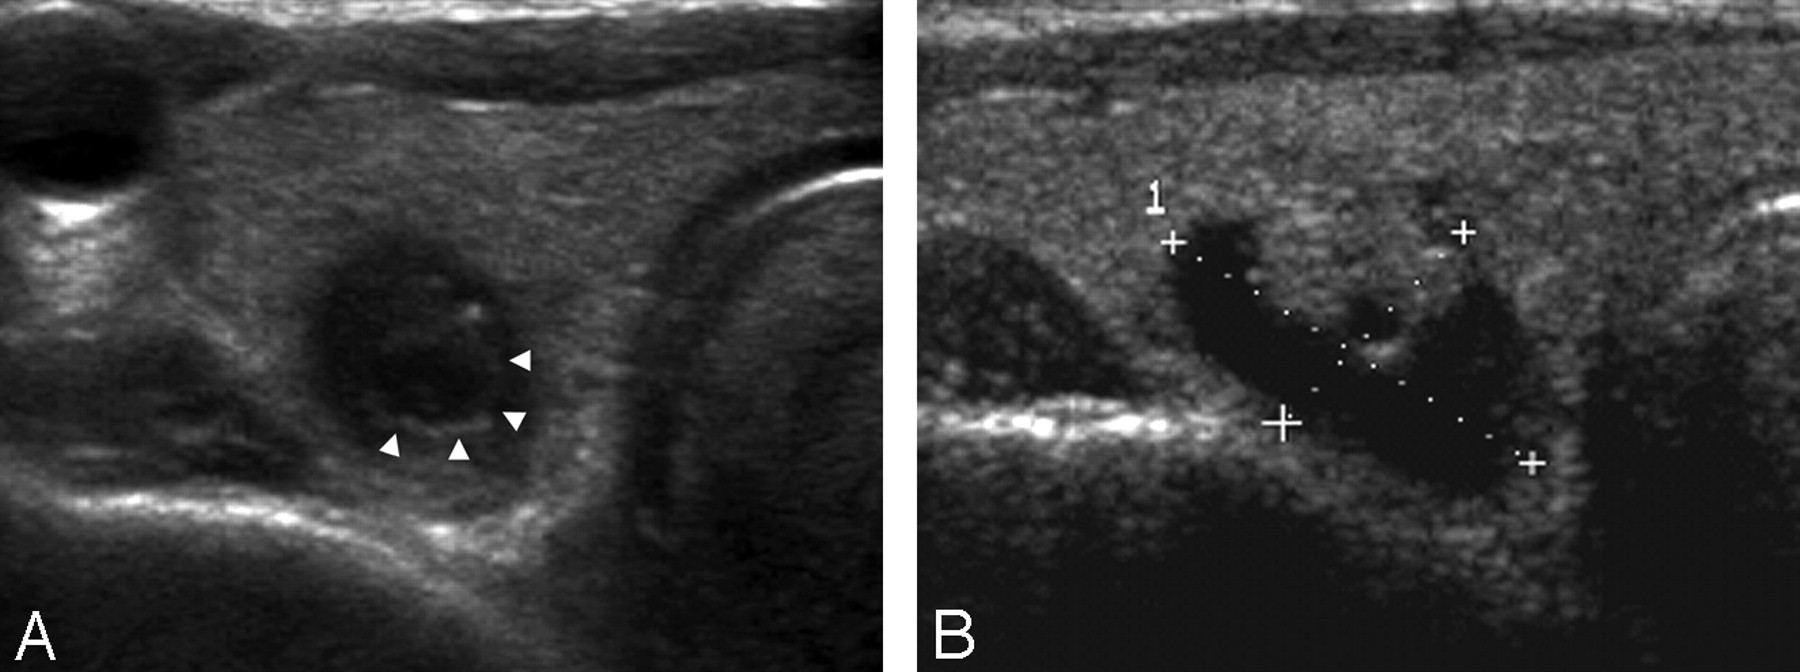 Collapsing Benign Cystic Nodules Of The Thyroid Gland Sonographic